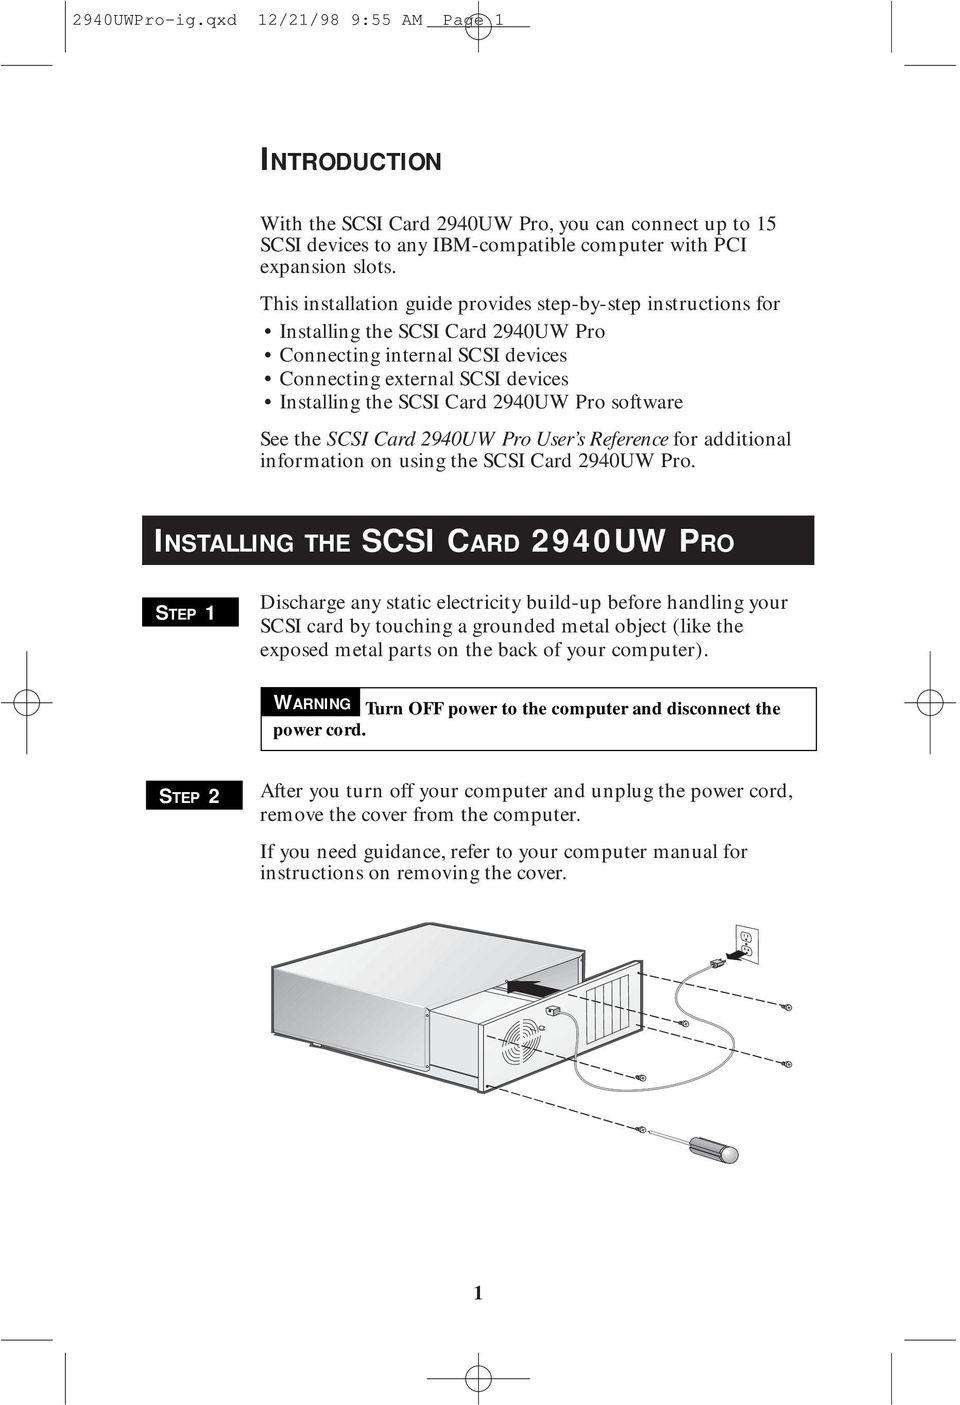 Pro software See the SCSI Card 2940UW Pro User s Reference for additional information on using the SCSI Card 2940UW Pro.